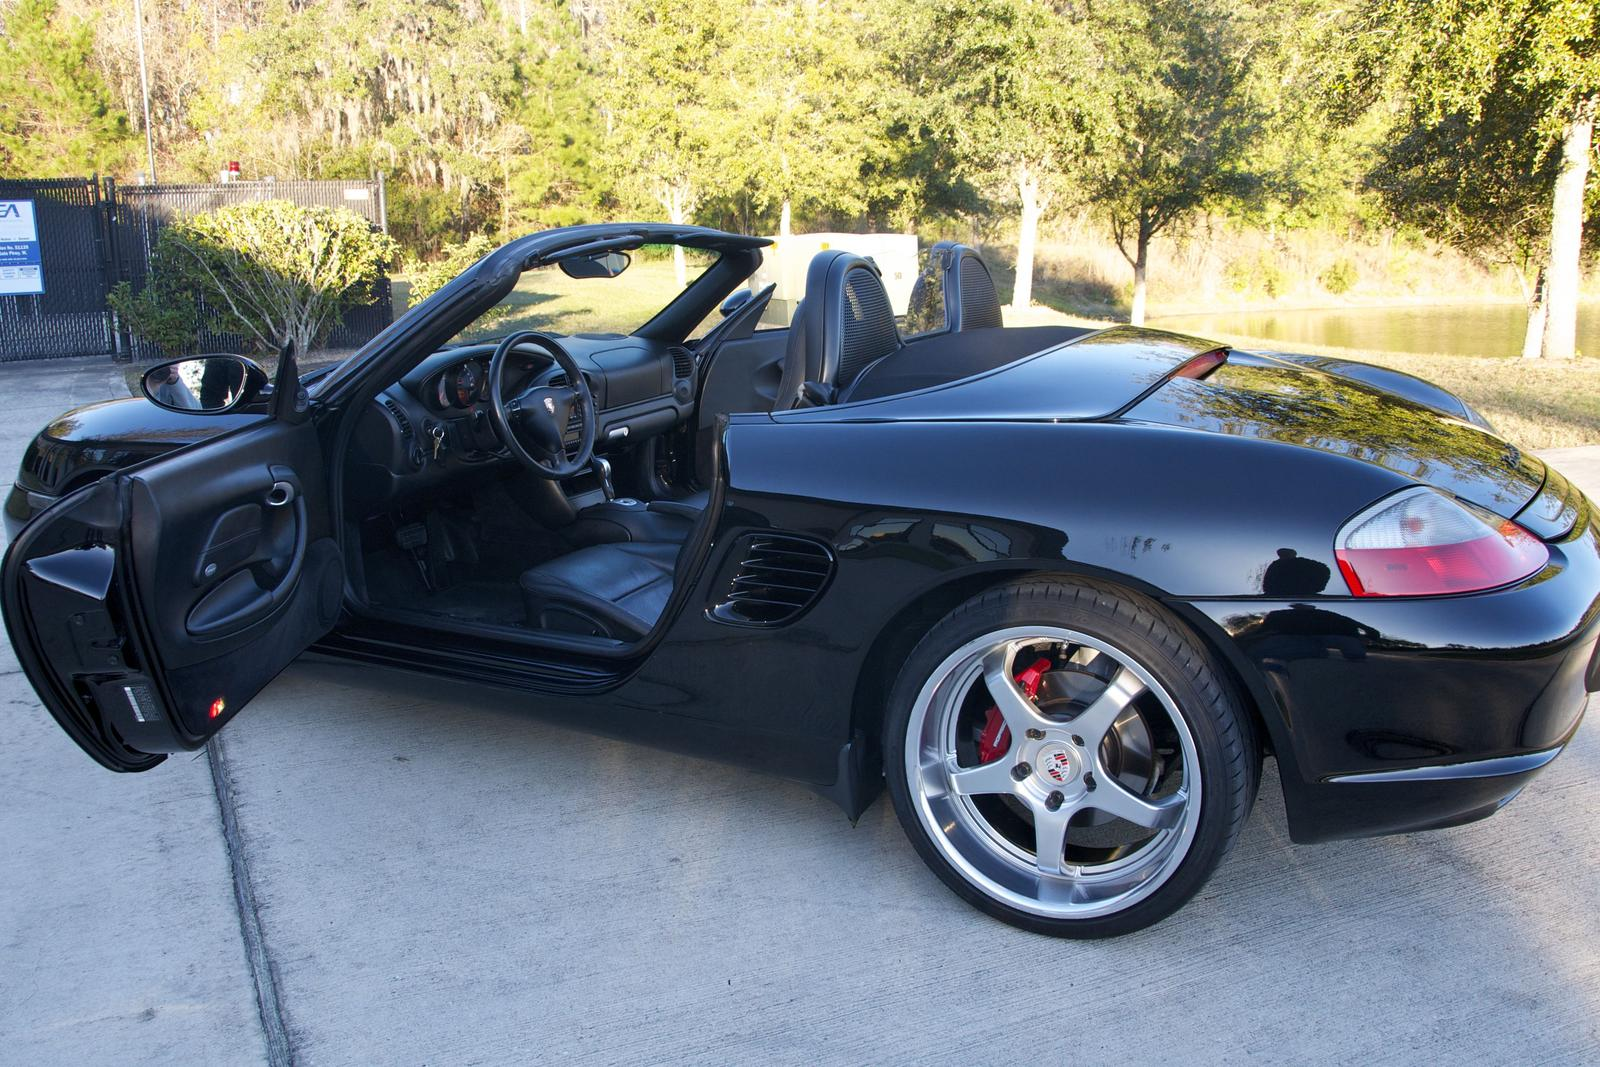 1999 Porsche Boxster 986 987 Pictures Information And Specs 99 Starter Wiring Diagram Cars 15